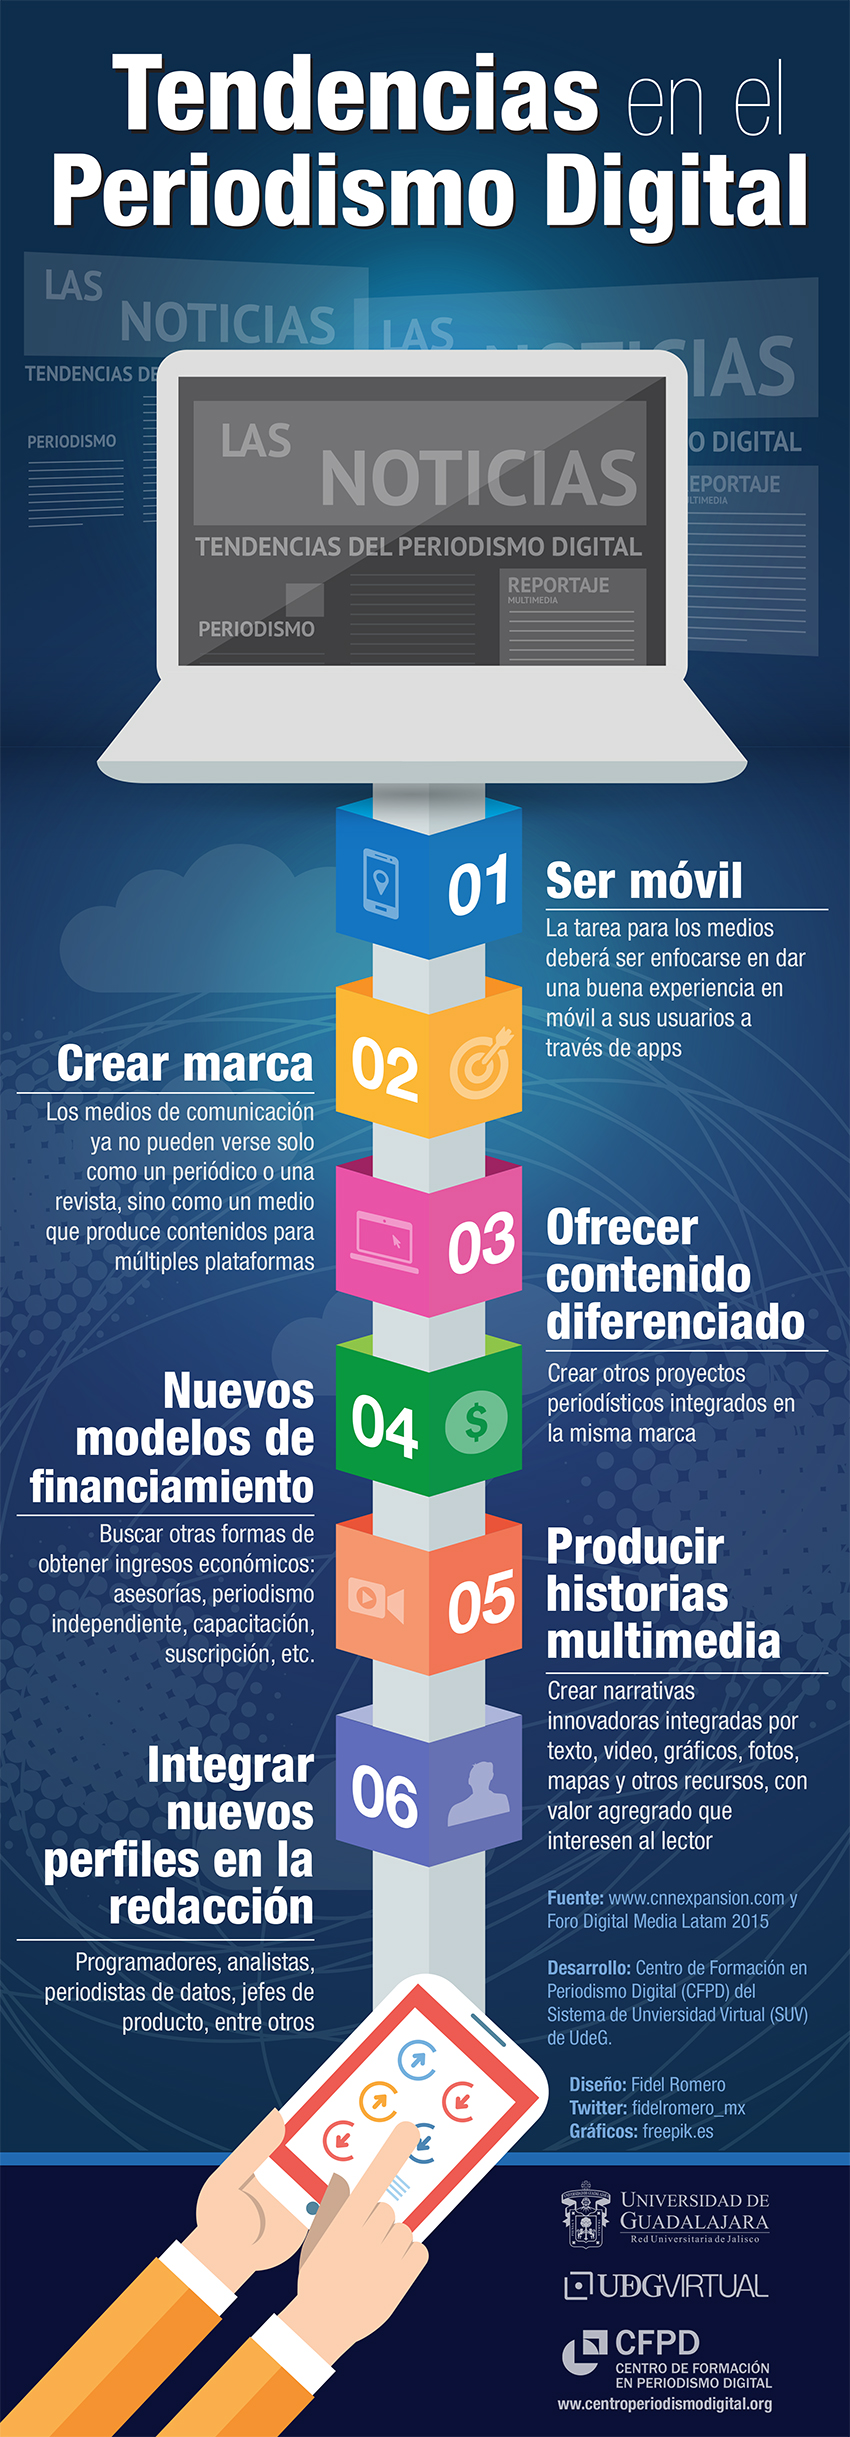 tendencias-periodismo-digital-infografia